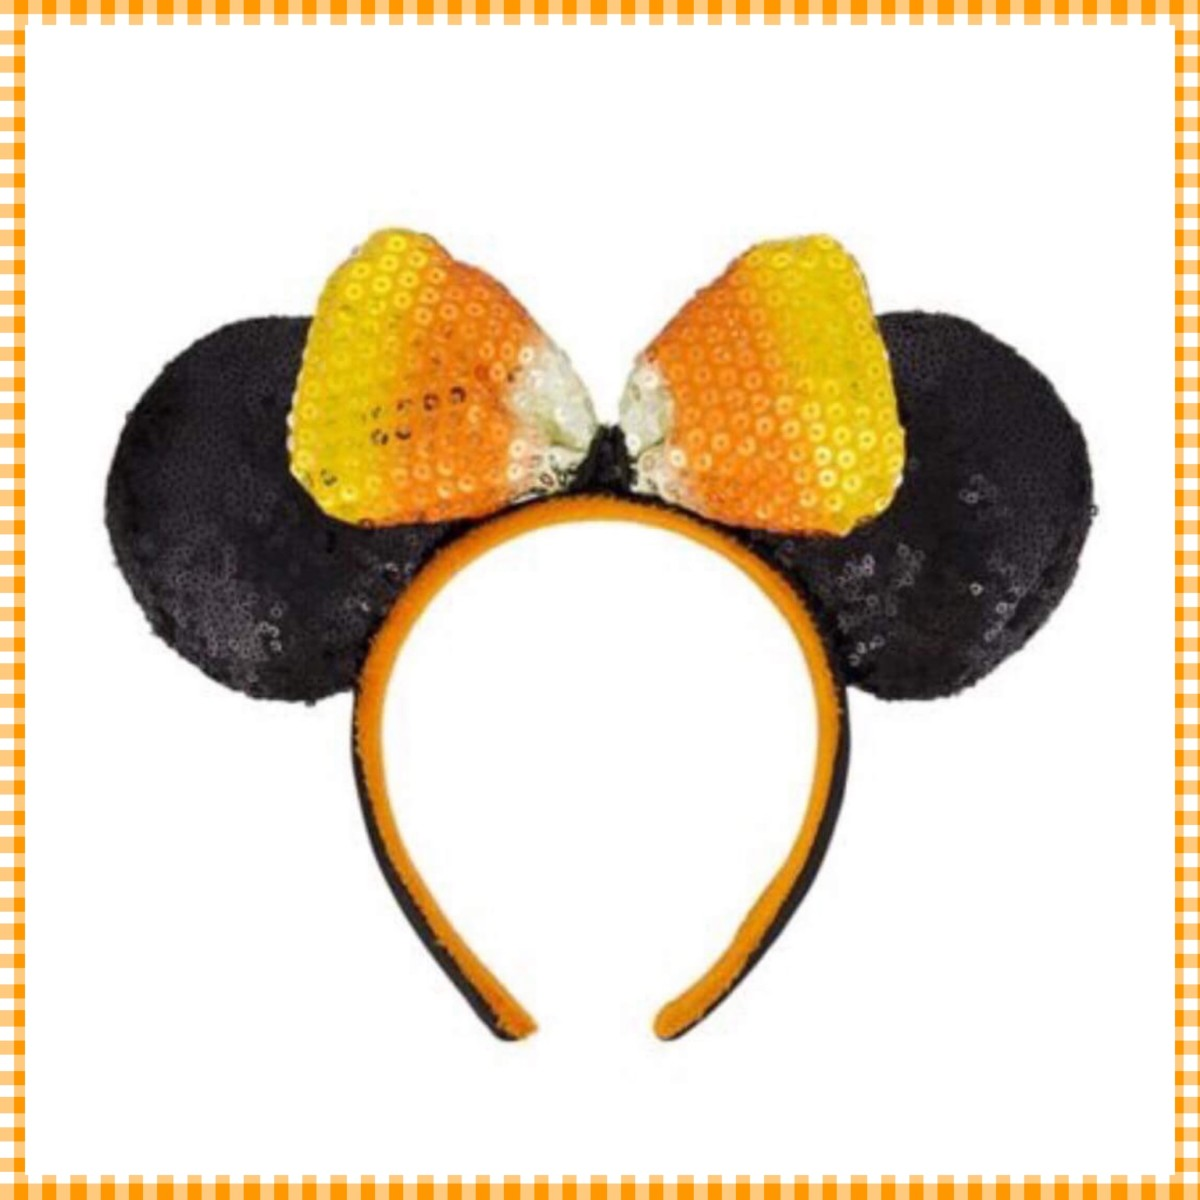 New Halloween and Christmas Ears Coming Soon! #DisneyStyle 24